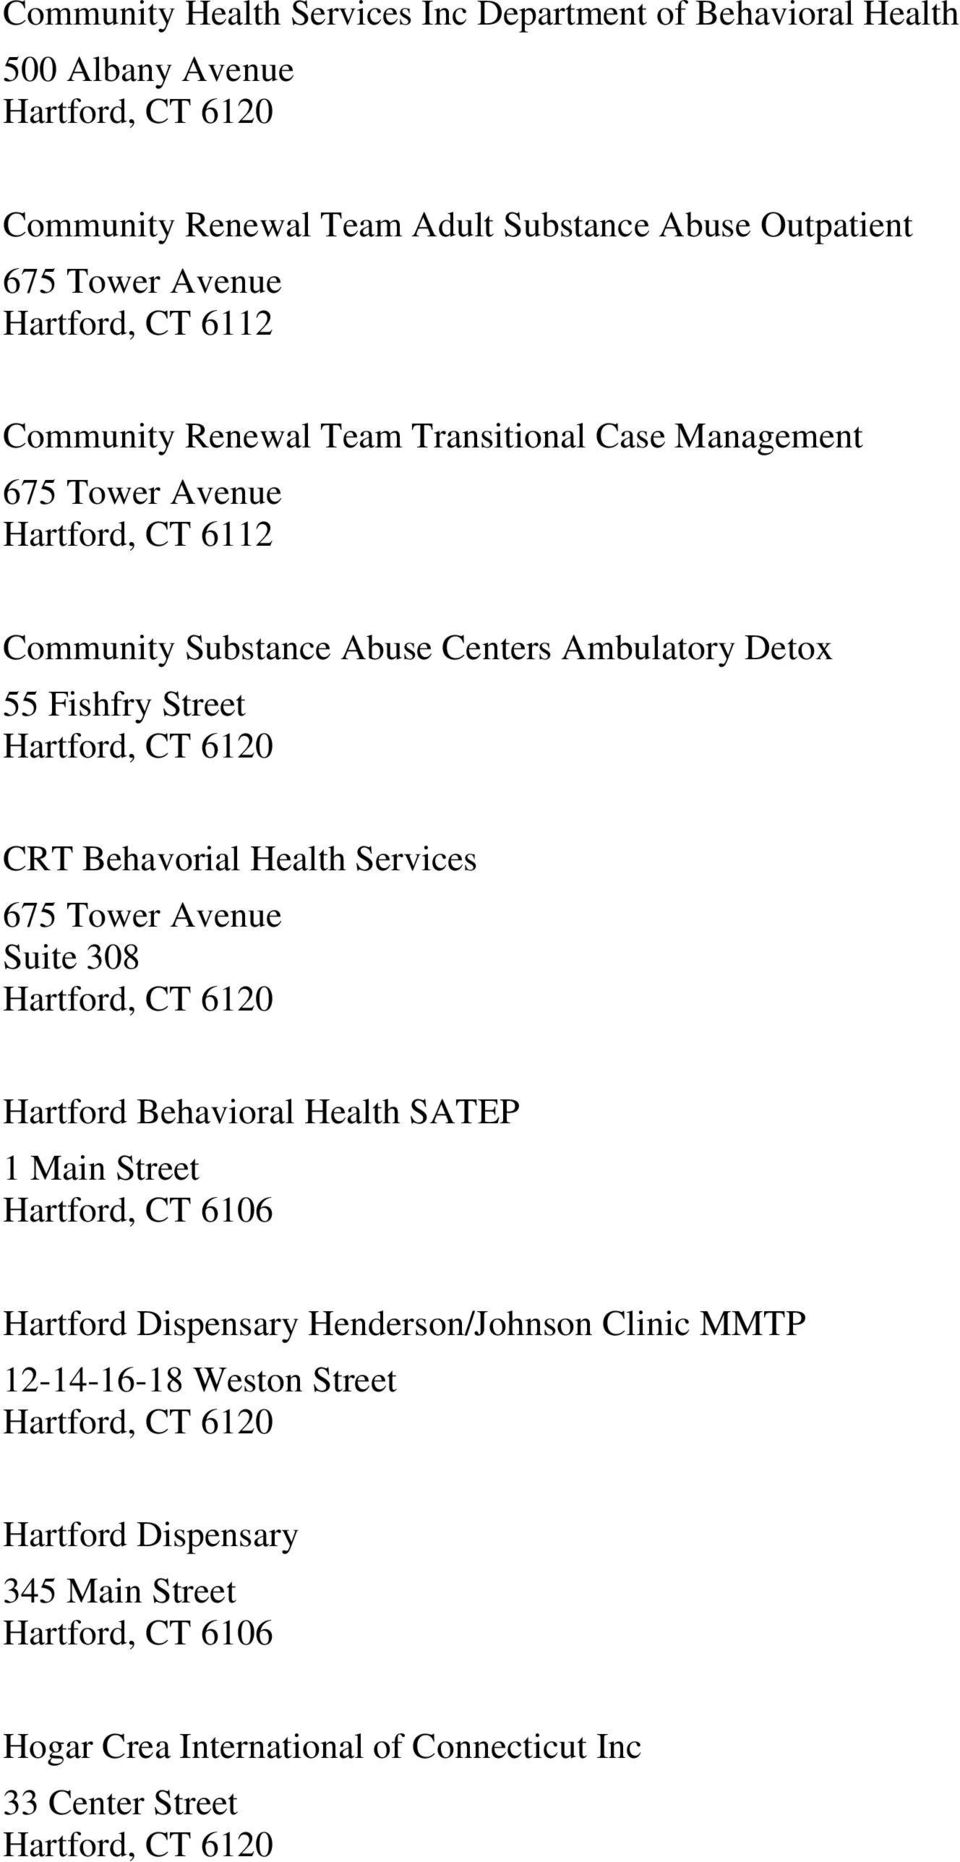 Fishfry Street CRT Behavorial Health Services 675 Tower Avenue Suite 308 Hartford Behavioral Health SATEP 1 Main Street Hartford Dispensary